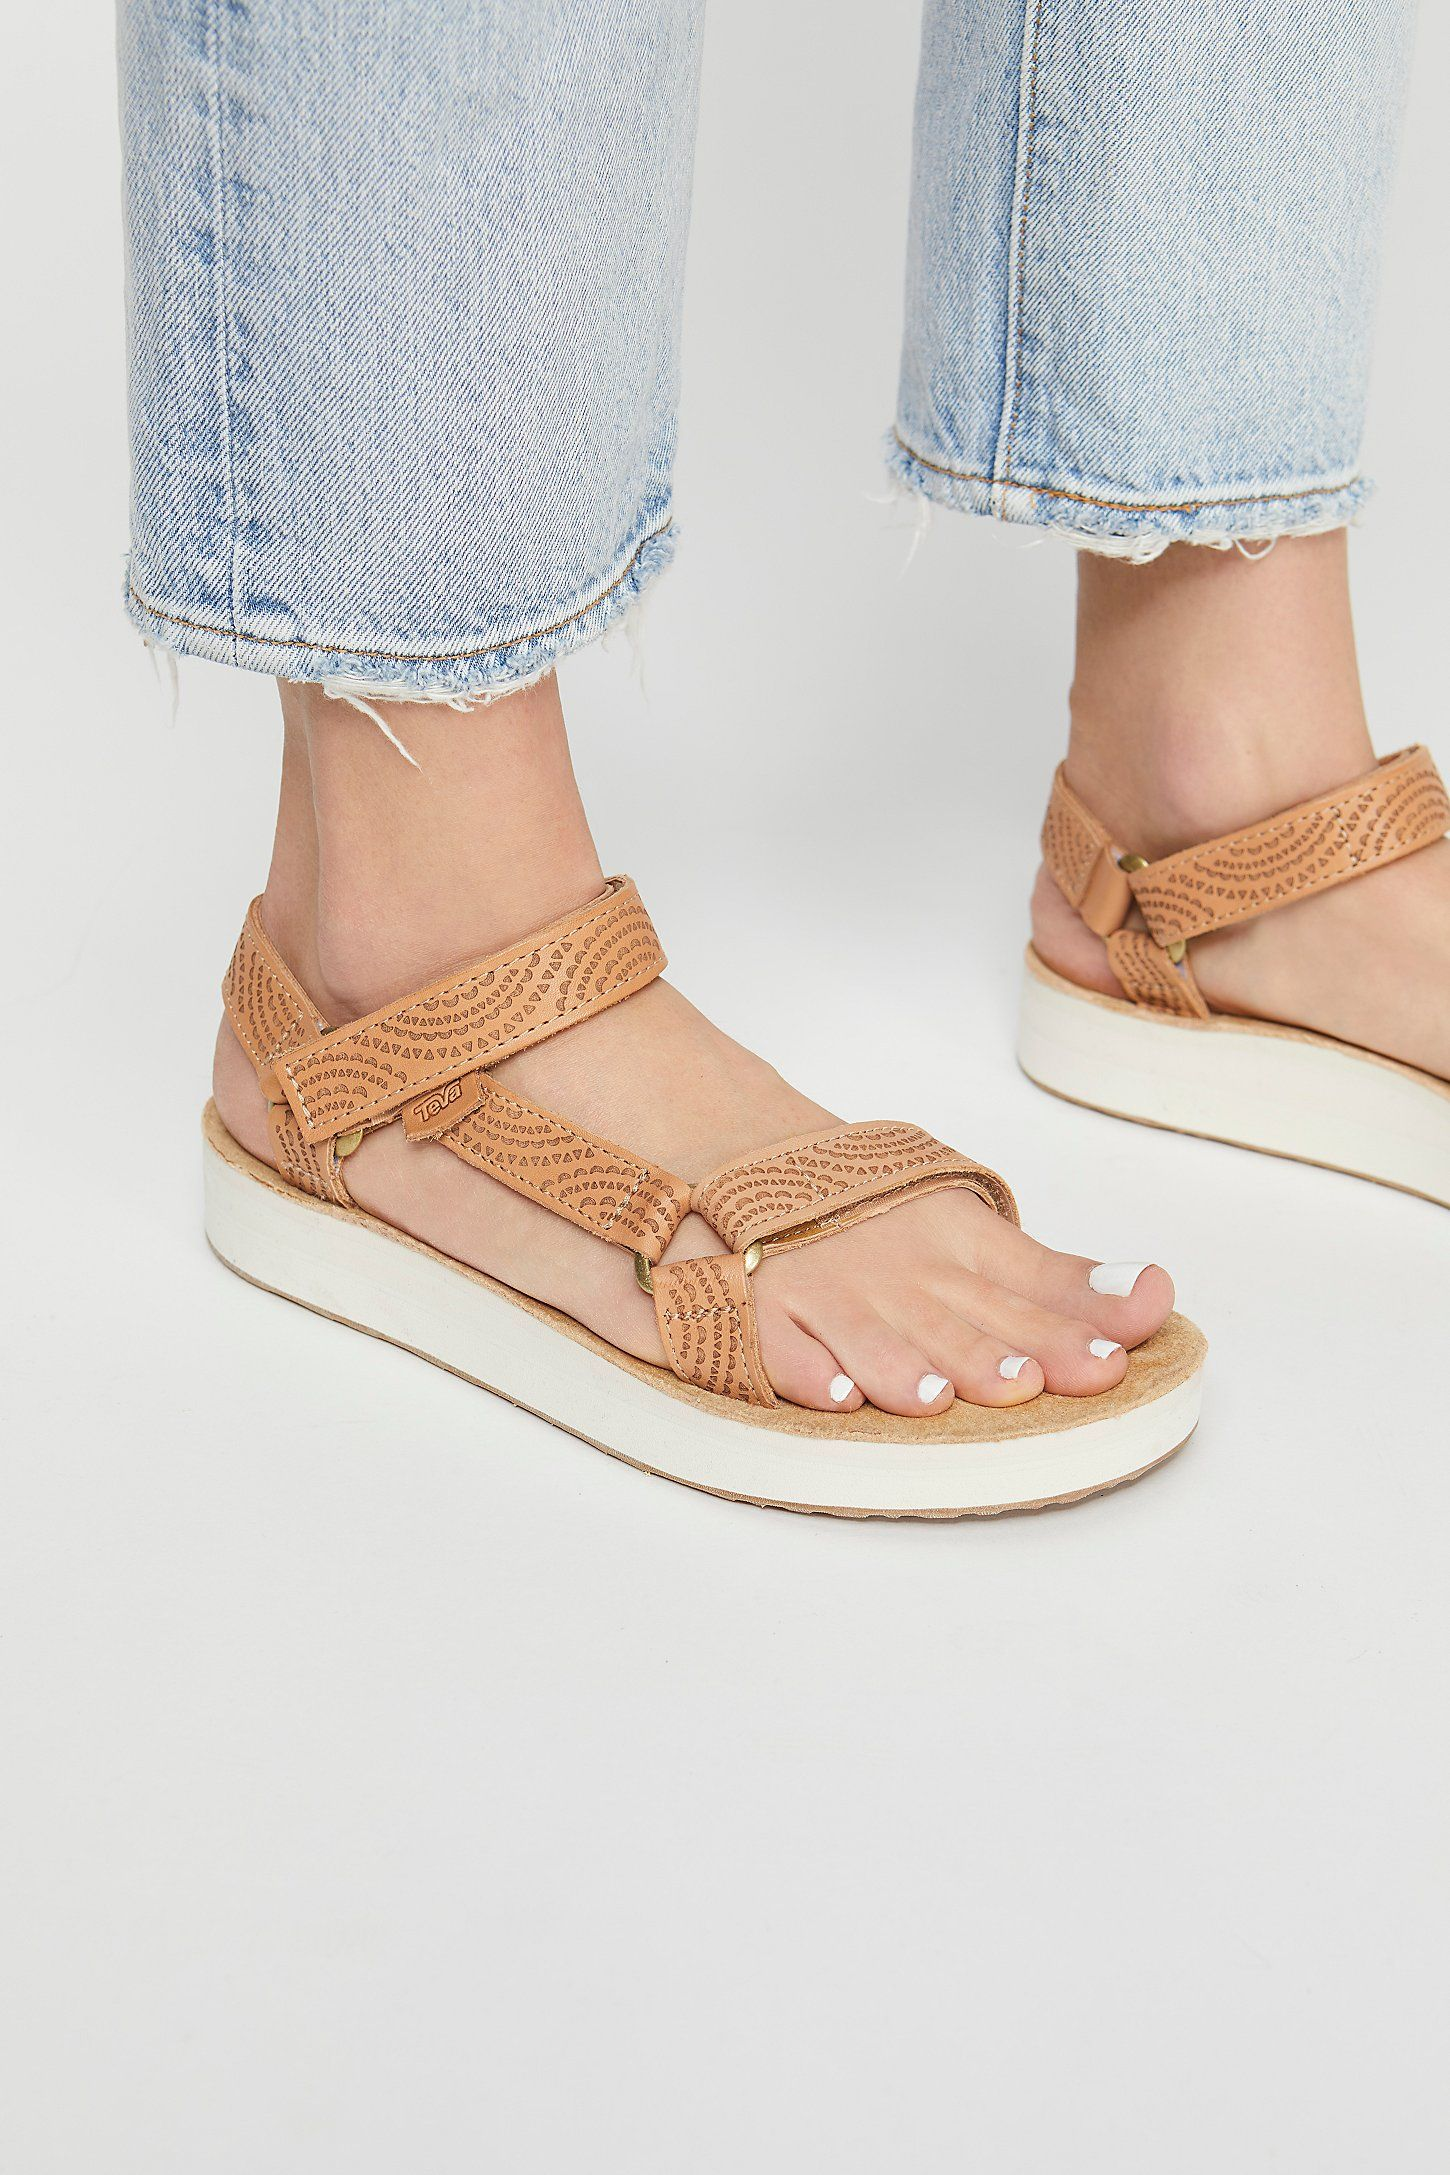 3f486dda1745 Shop our Midform Universal Geometric Teva at FreePeople.com. Share style  pics with FP Me